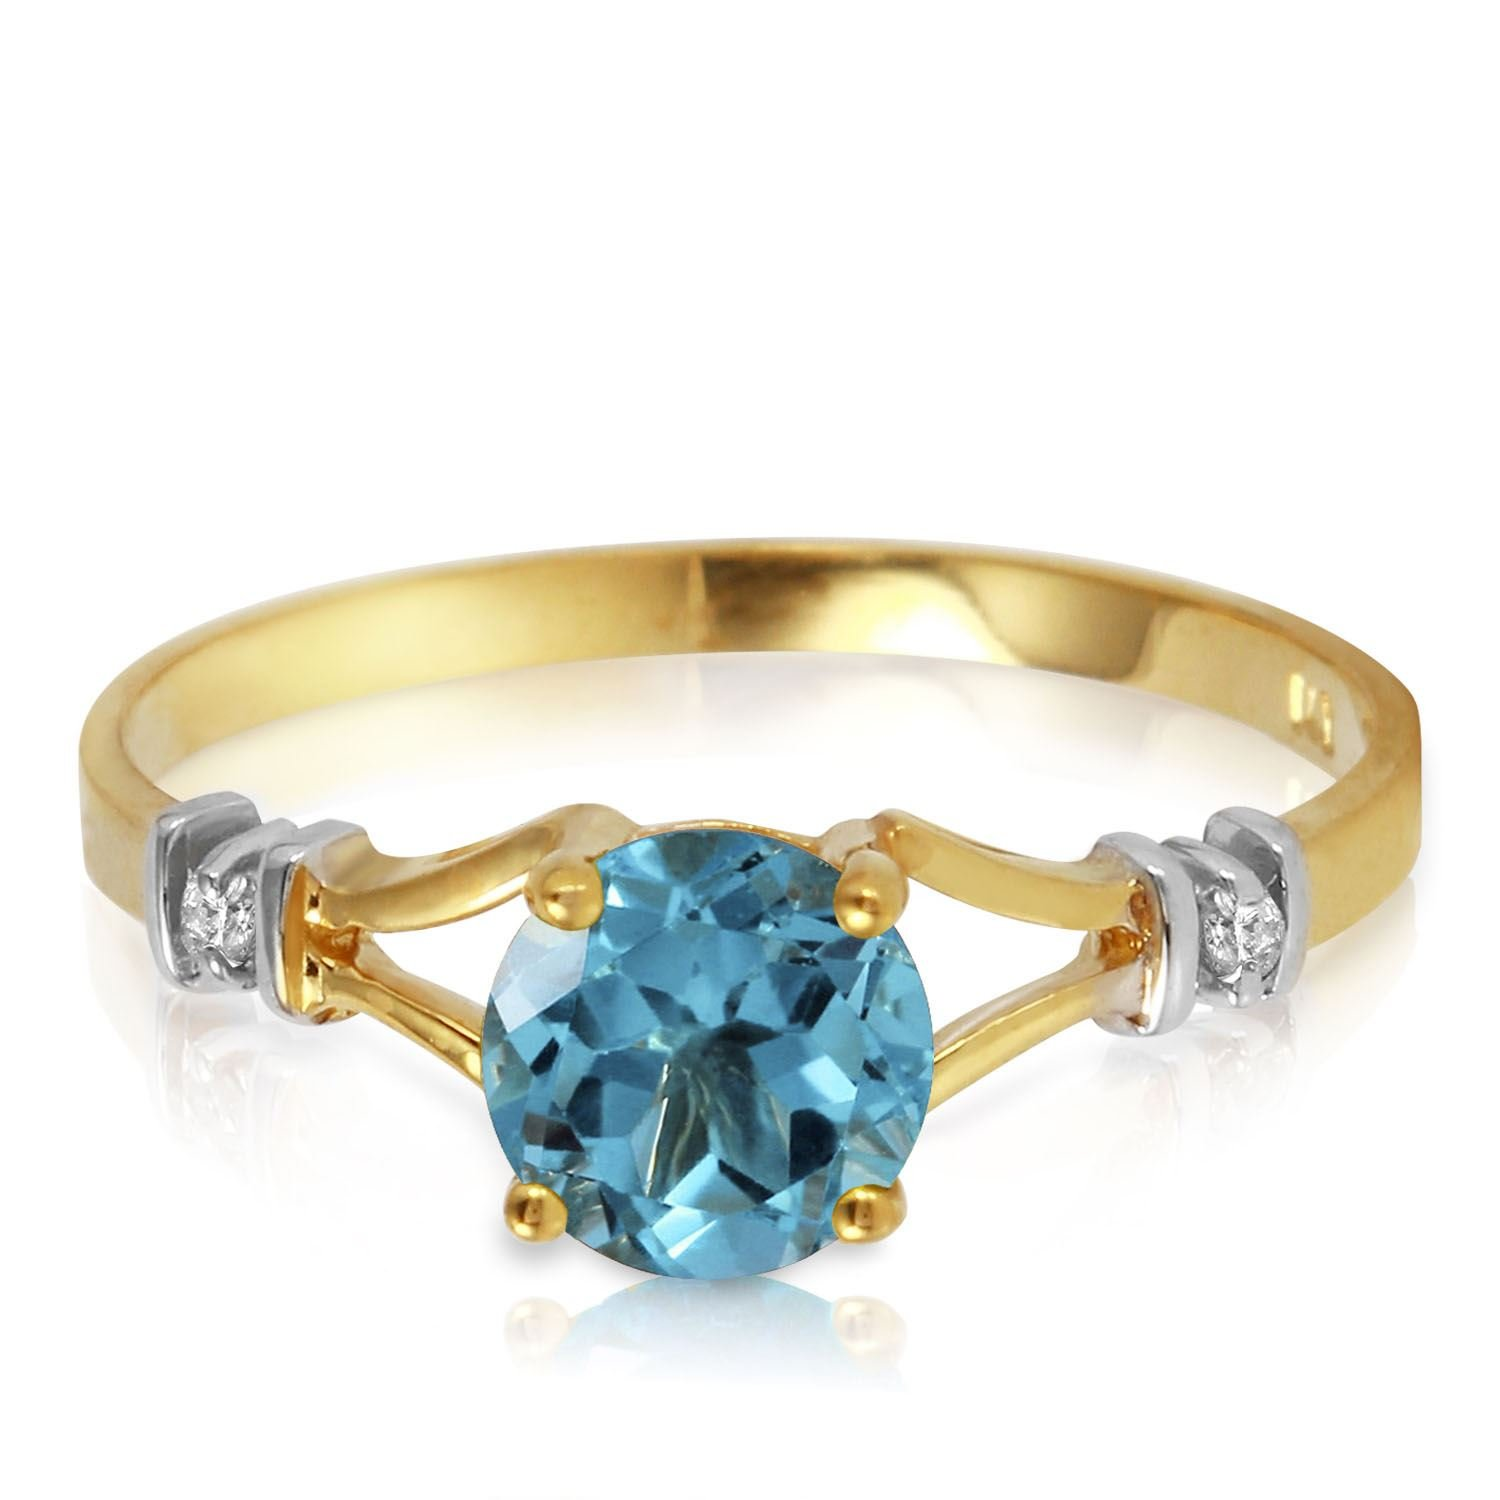 ALARRI 1.02 CTW 14K Solid Gold Love's Ingredient Blue Topaz Diamond Ring With Ring Size 11 by ALARRI (Image #1)